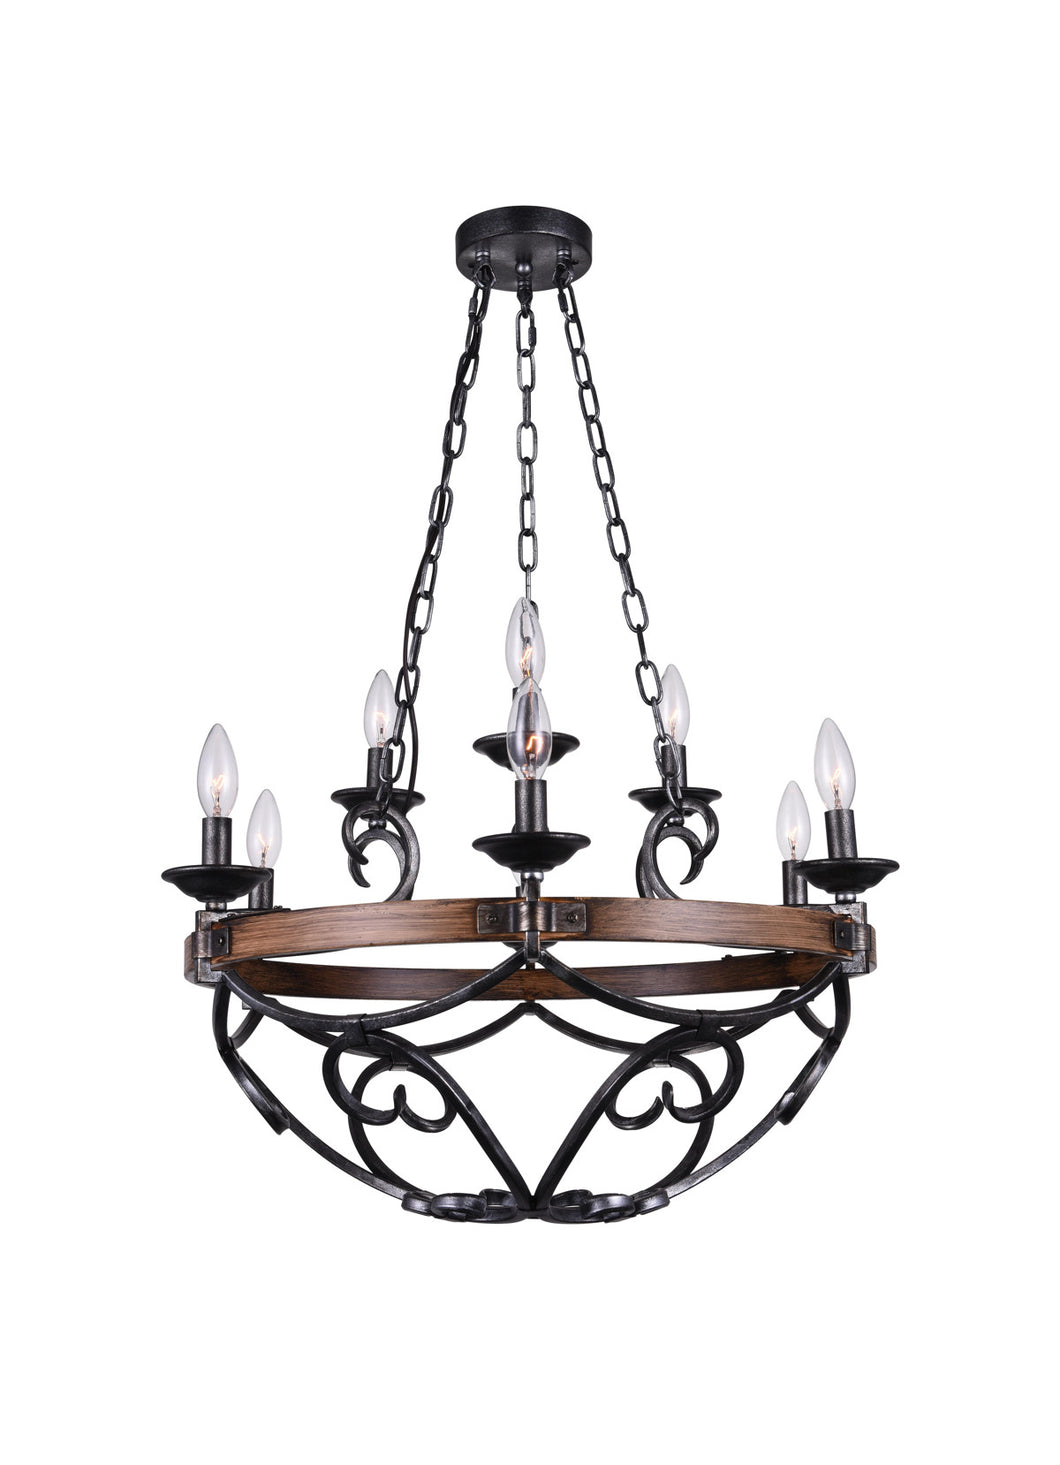 9 Light Candle Chandelier with Gun Metal finish